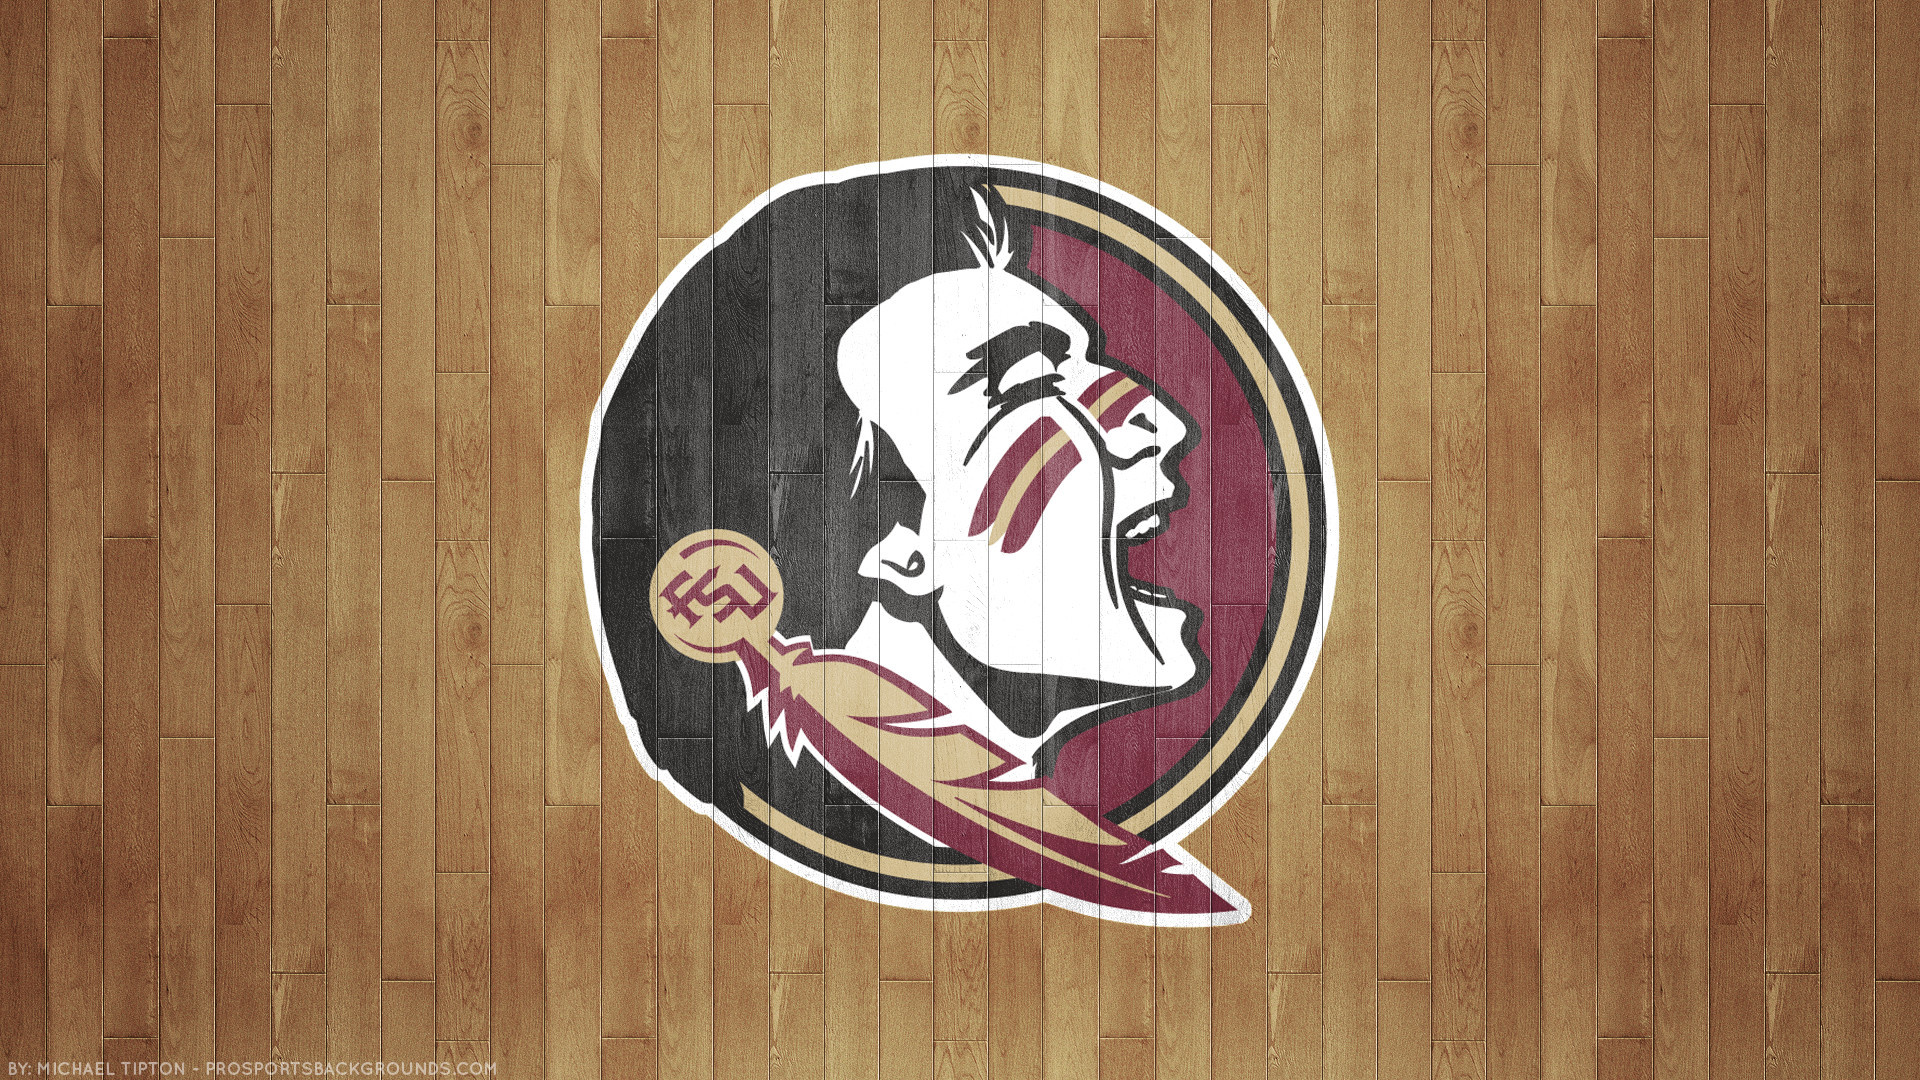 1920x1080 Florida State Seminoles 2018 ncaa basketball team logo hardwood wallpaper  free for